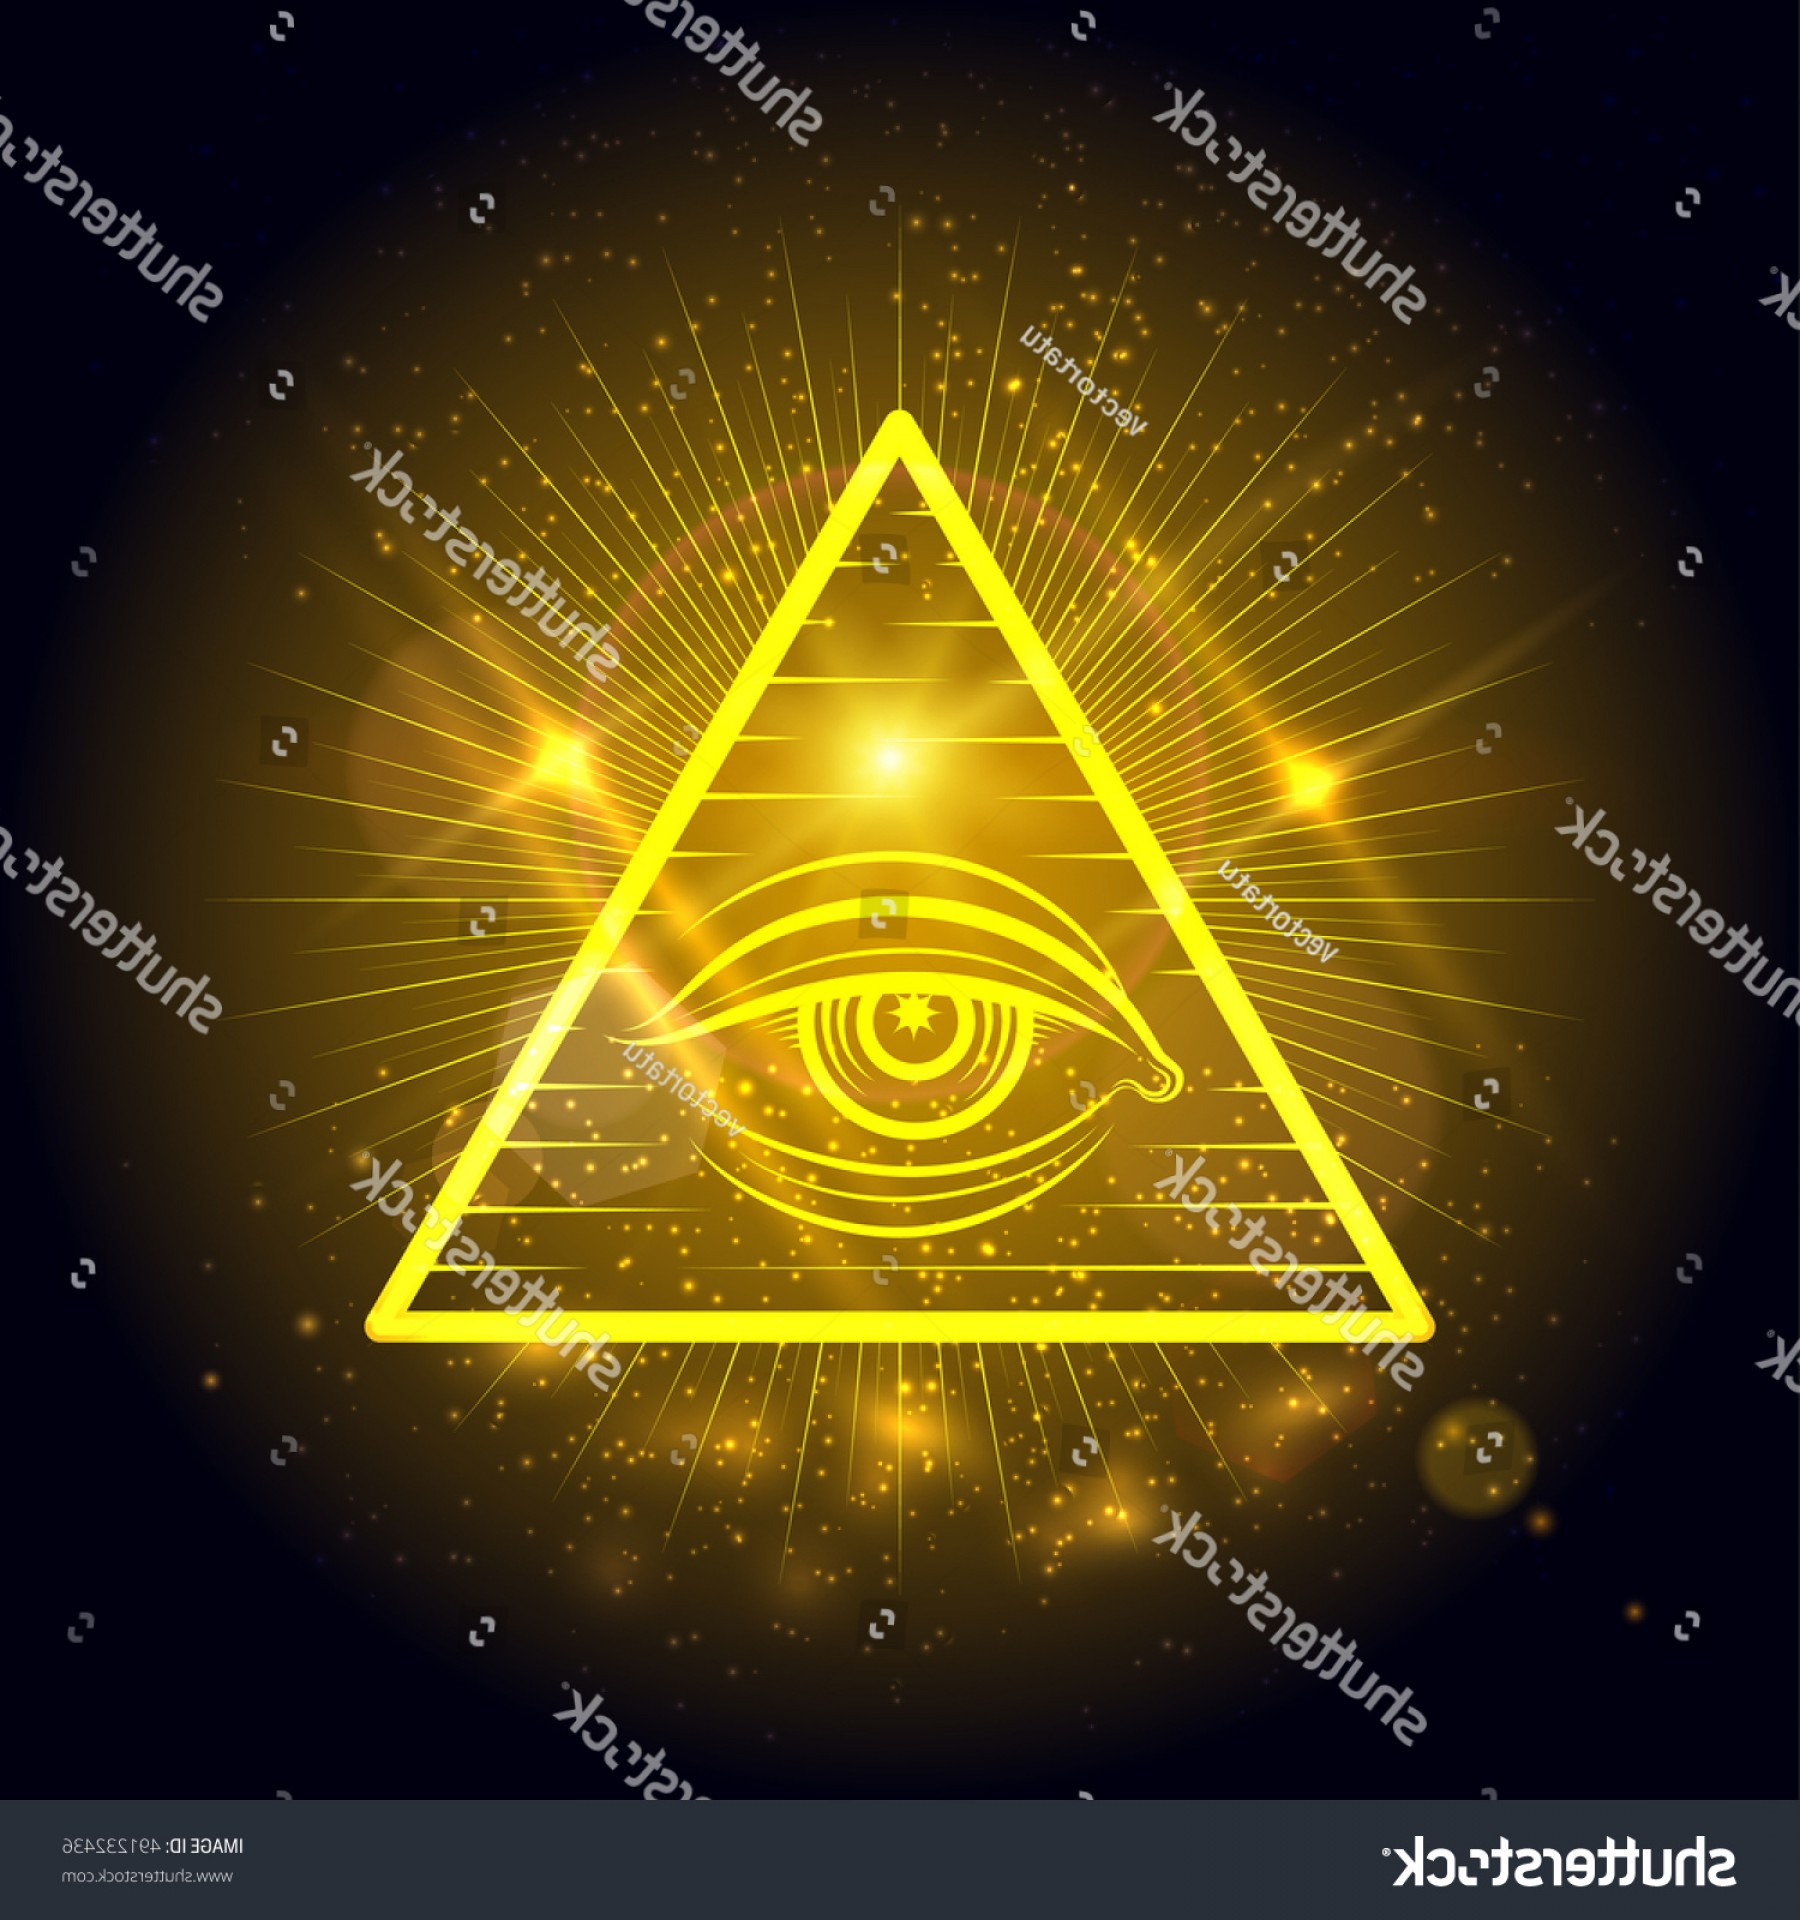 Sacred Heart Vector Genius: Masonic Eye Omniscience On Golden Shining